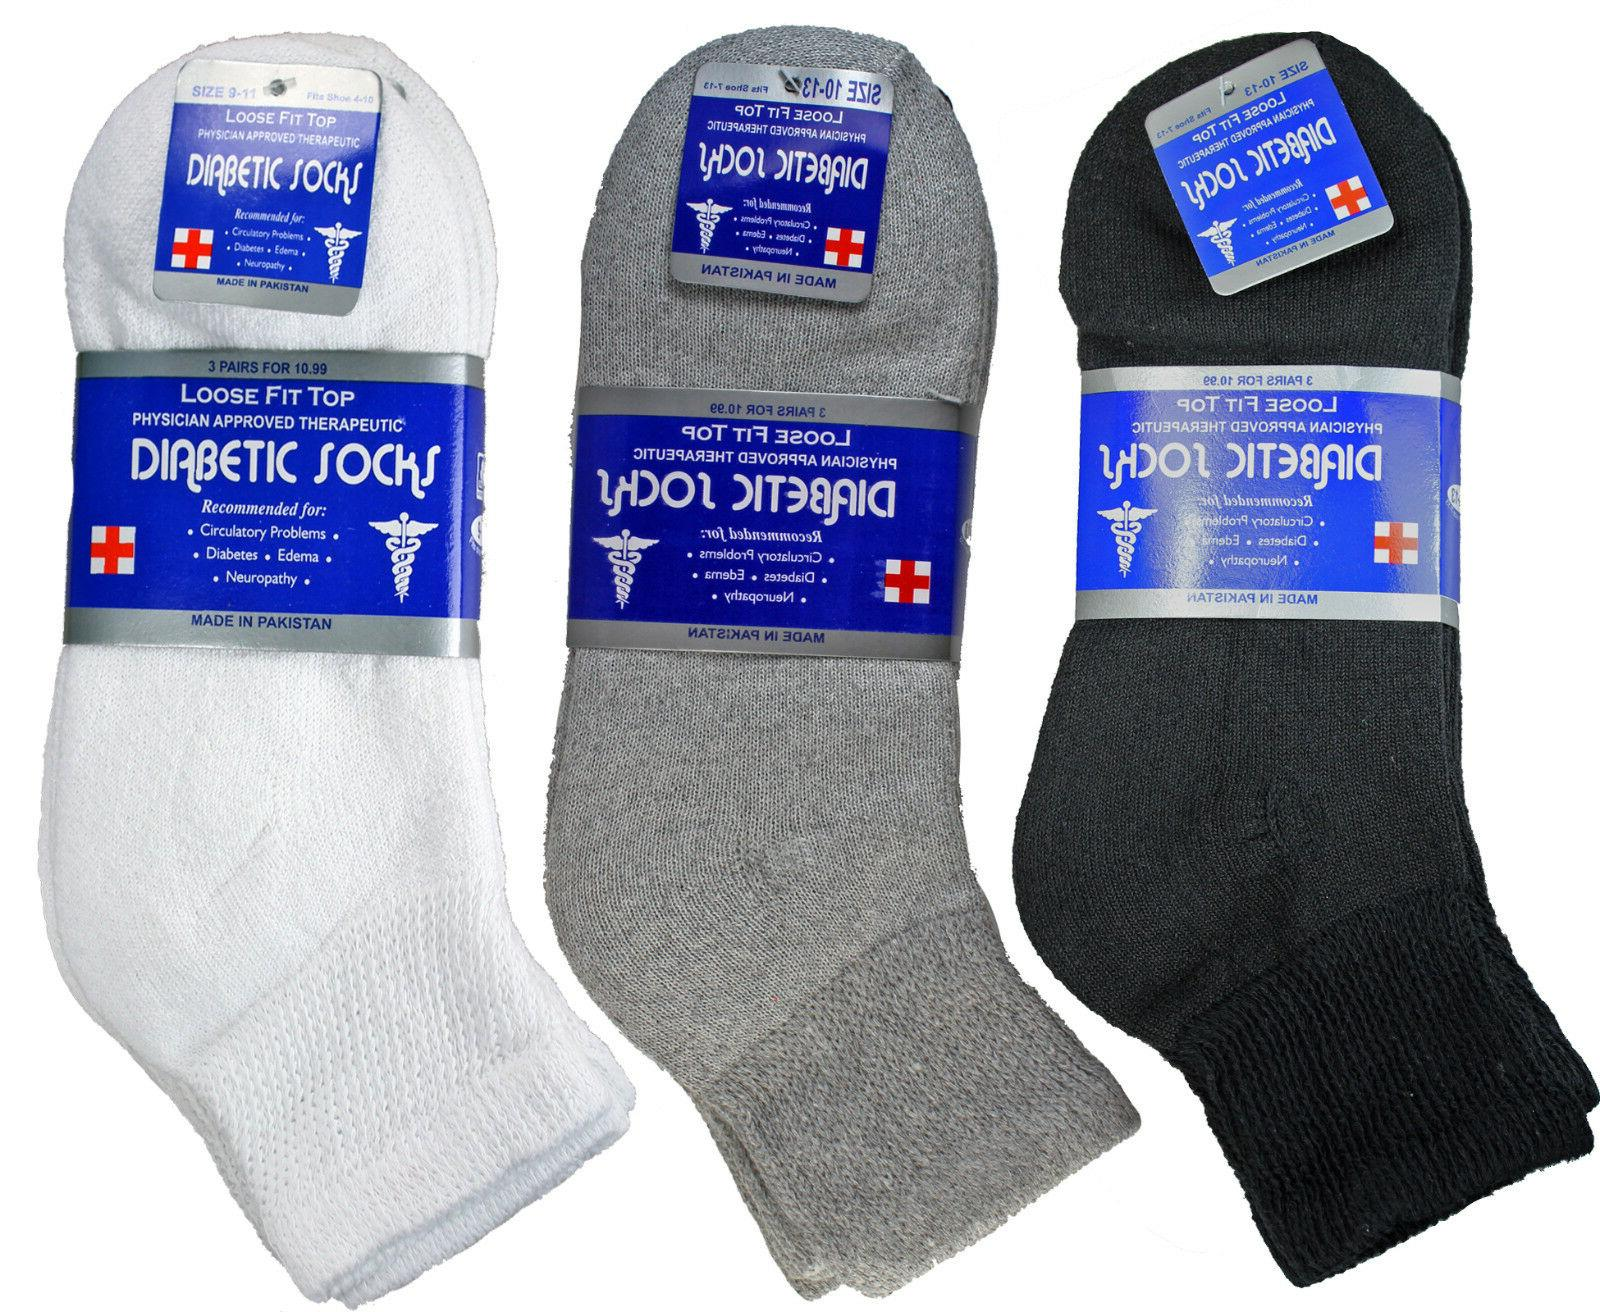 3-12 Pairs Mens Diabetic Ankle Quarter Socks Cotton Loose Fi